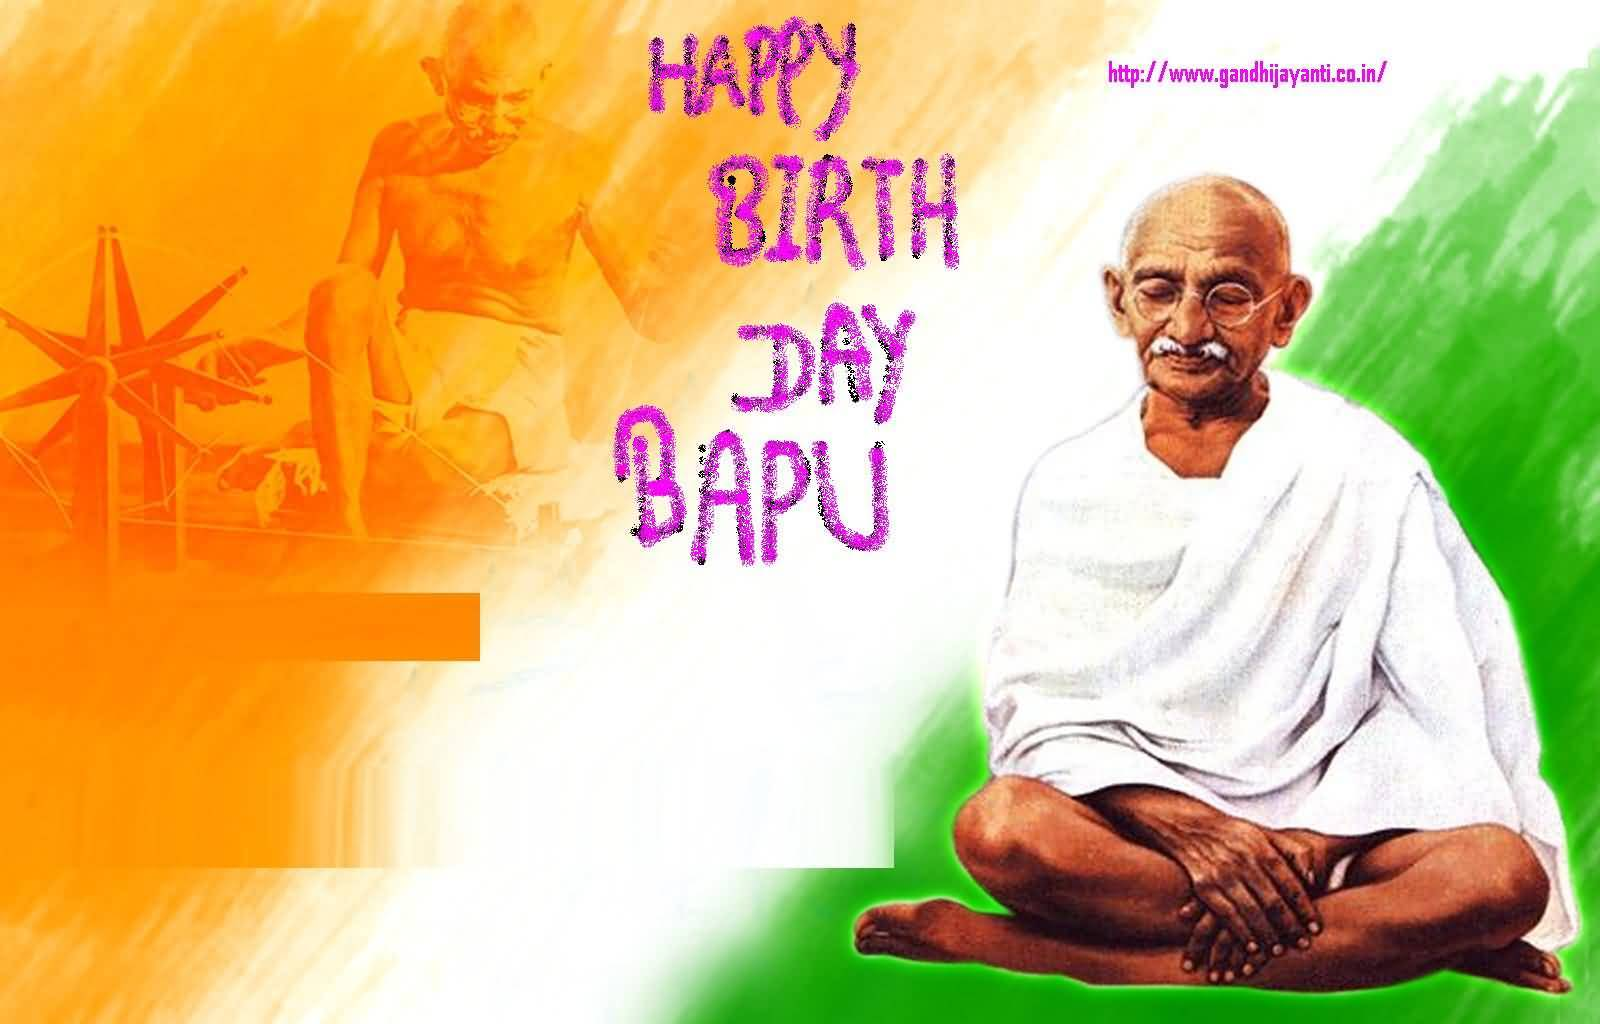 60 best gandhi jayanti wishes pictures and images happy birthday bapu gandhi